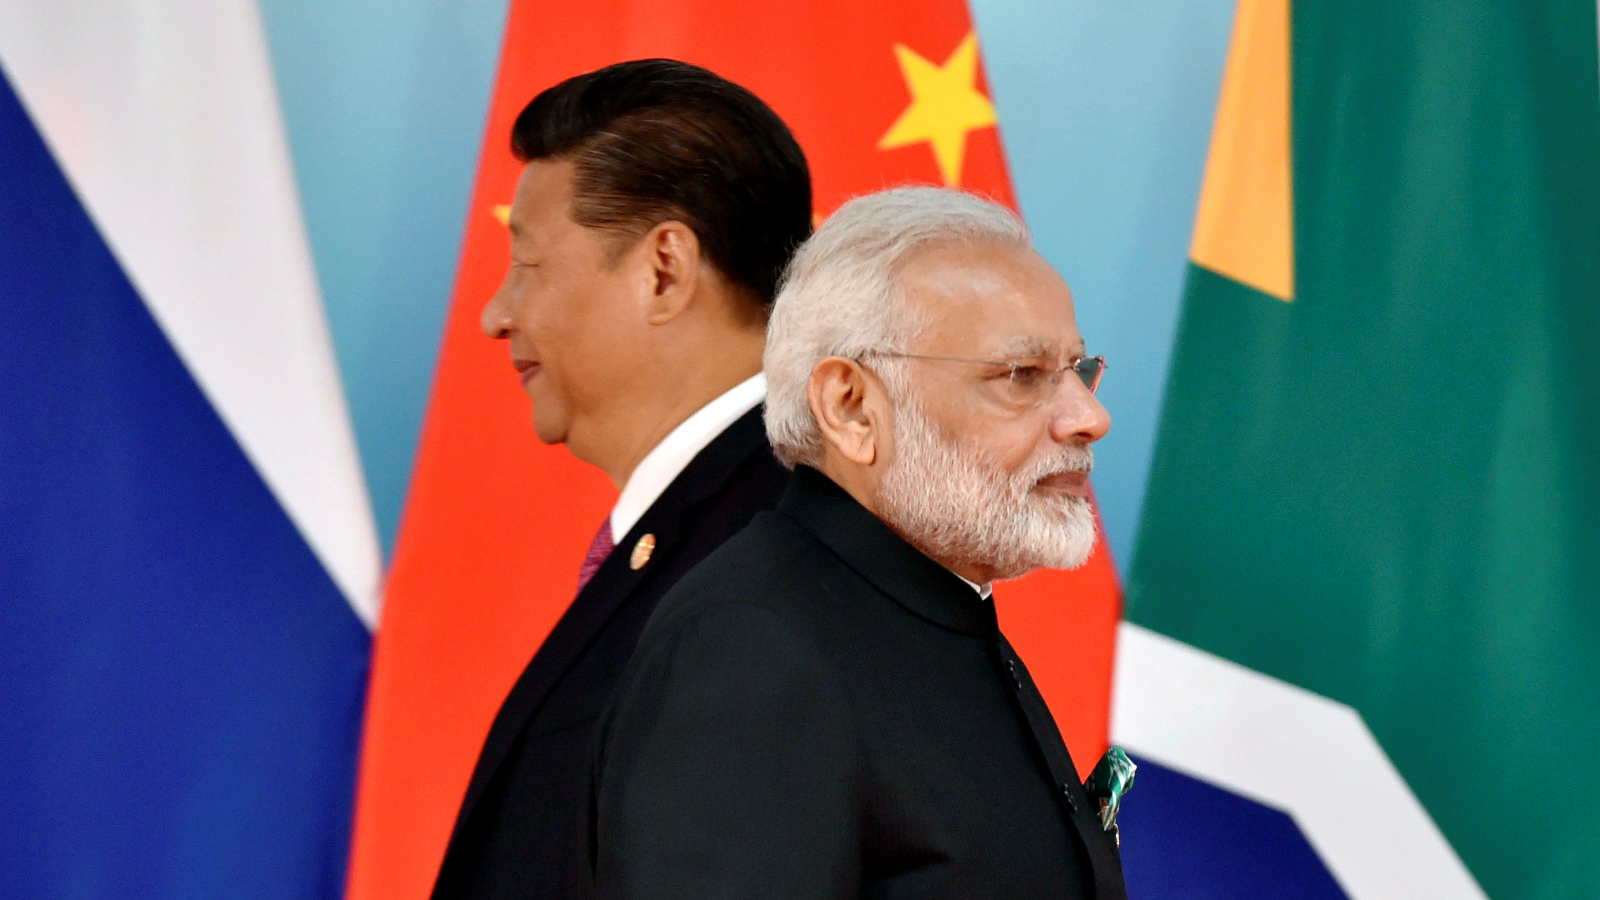 China says problems with India temporary, cooperation everlasting